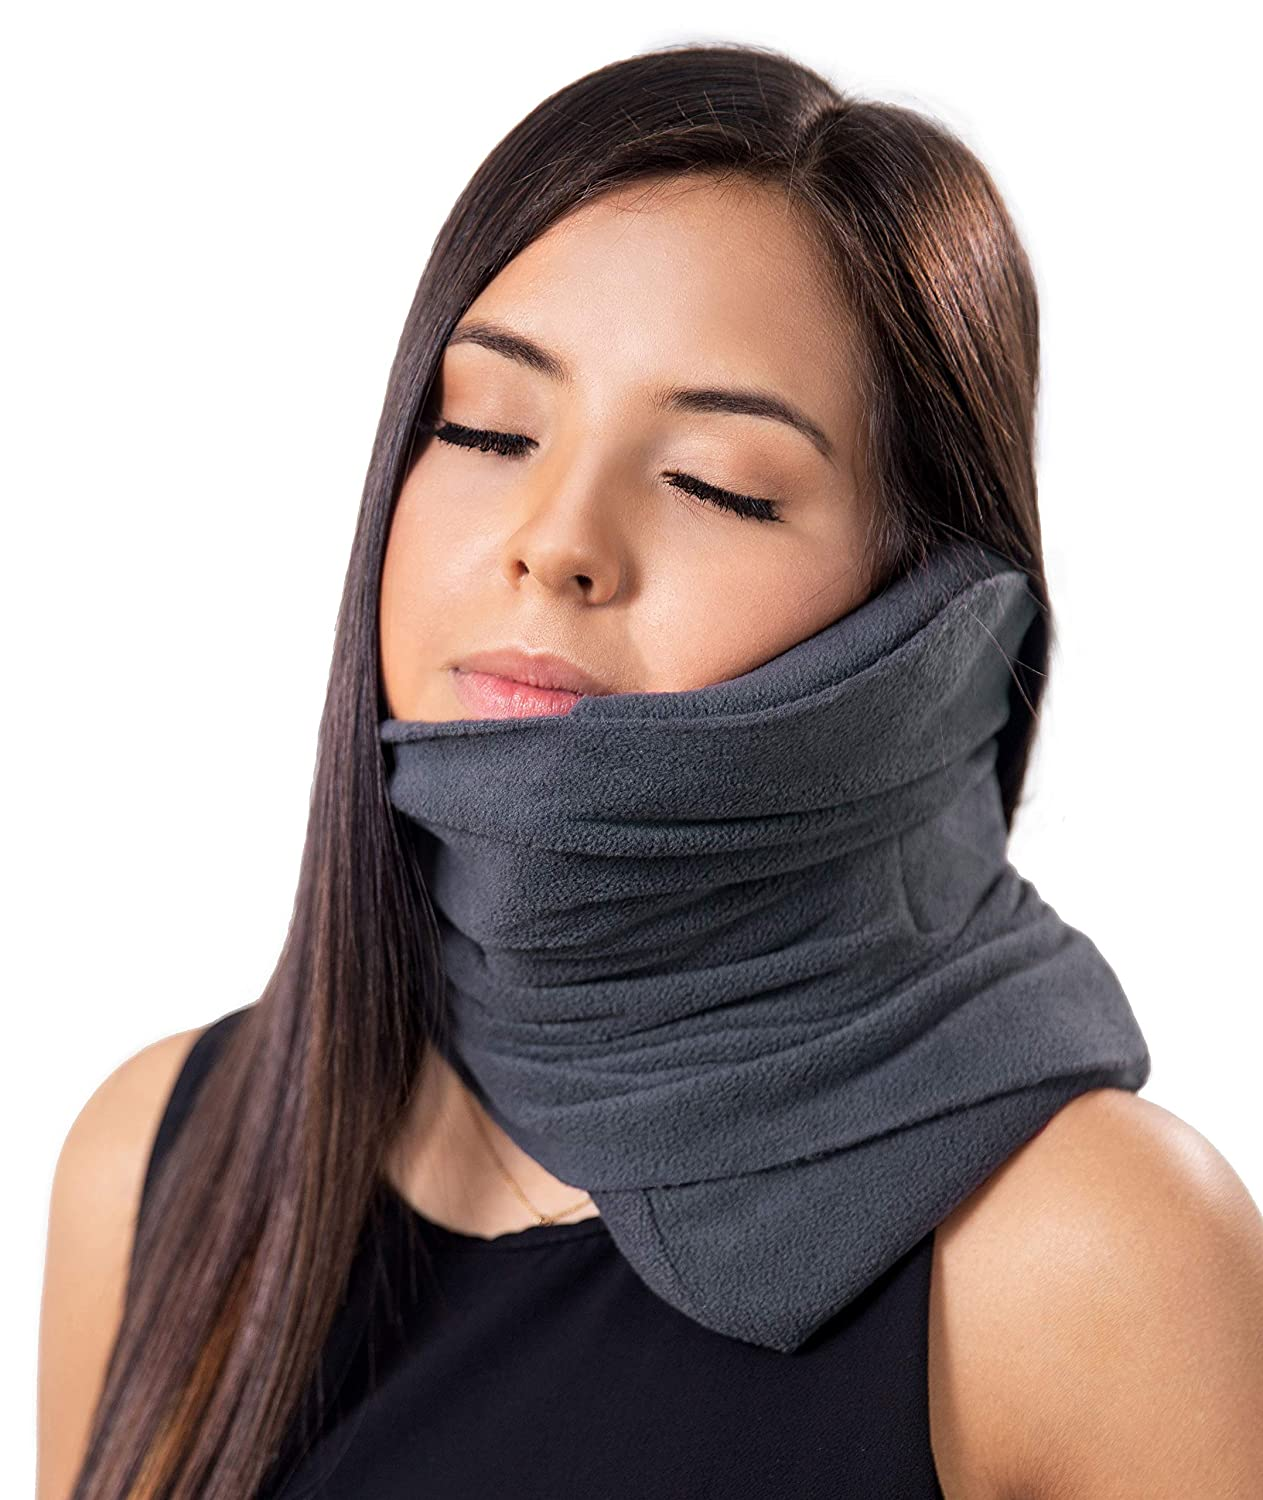 Goose Scarf Travel Pillow Neck Support for Airplane - Scientifically Proven Nap Scarf for Long Haul Sleep - Adjustable, Ultralight, Super Soft & Machine Washable Wrap-Around Neck Pillow (Grey) Goose Travel